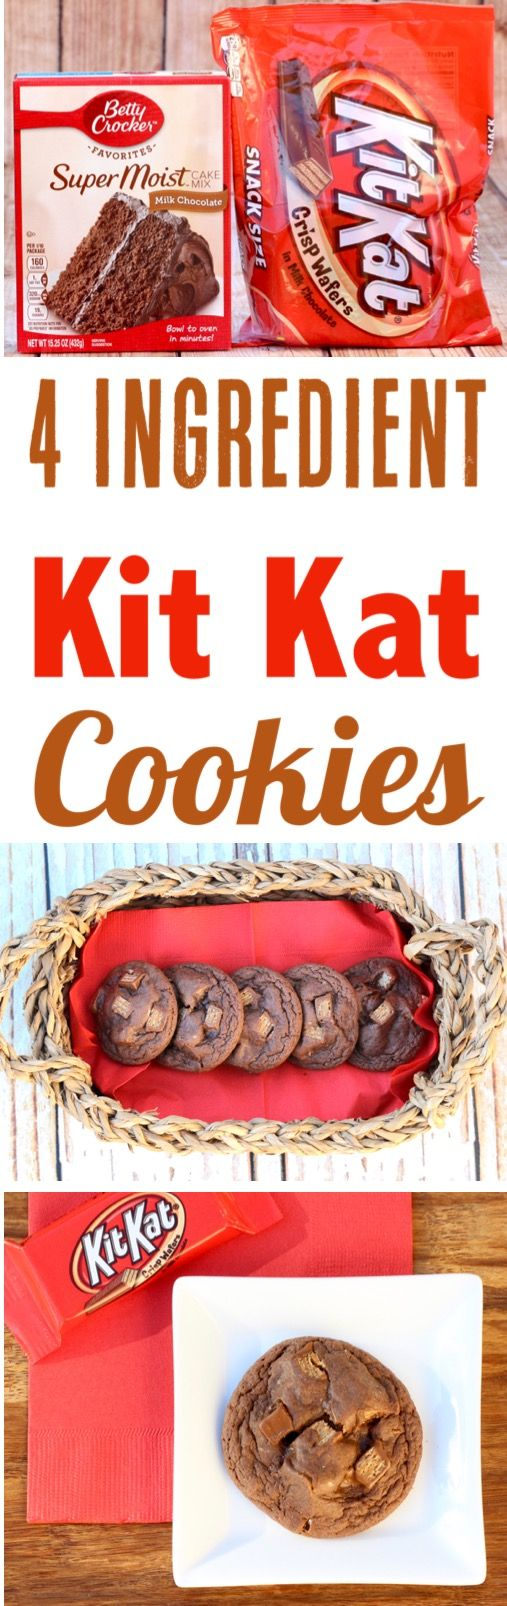 Chocolate Cookie Recipes!  These Easy Kit Kat Cookies are the ultimate treat for chocolate lovers... just 4 Ingredients and SO delicious!  Make some for dessert this weekend!